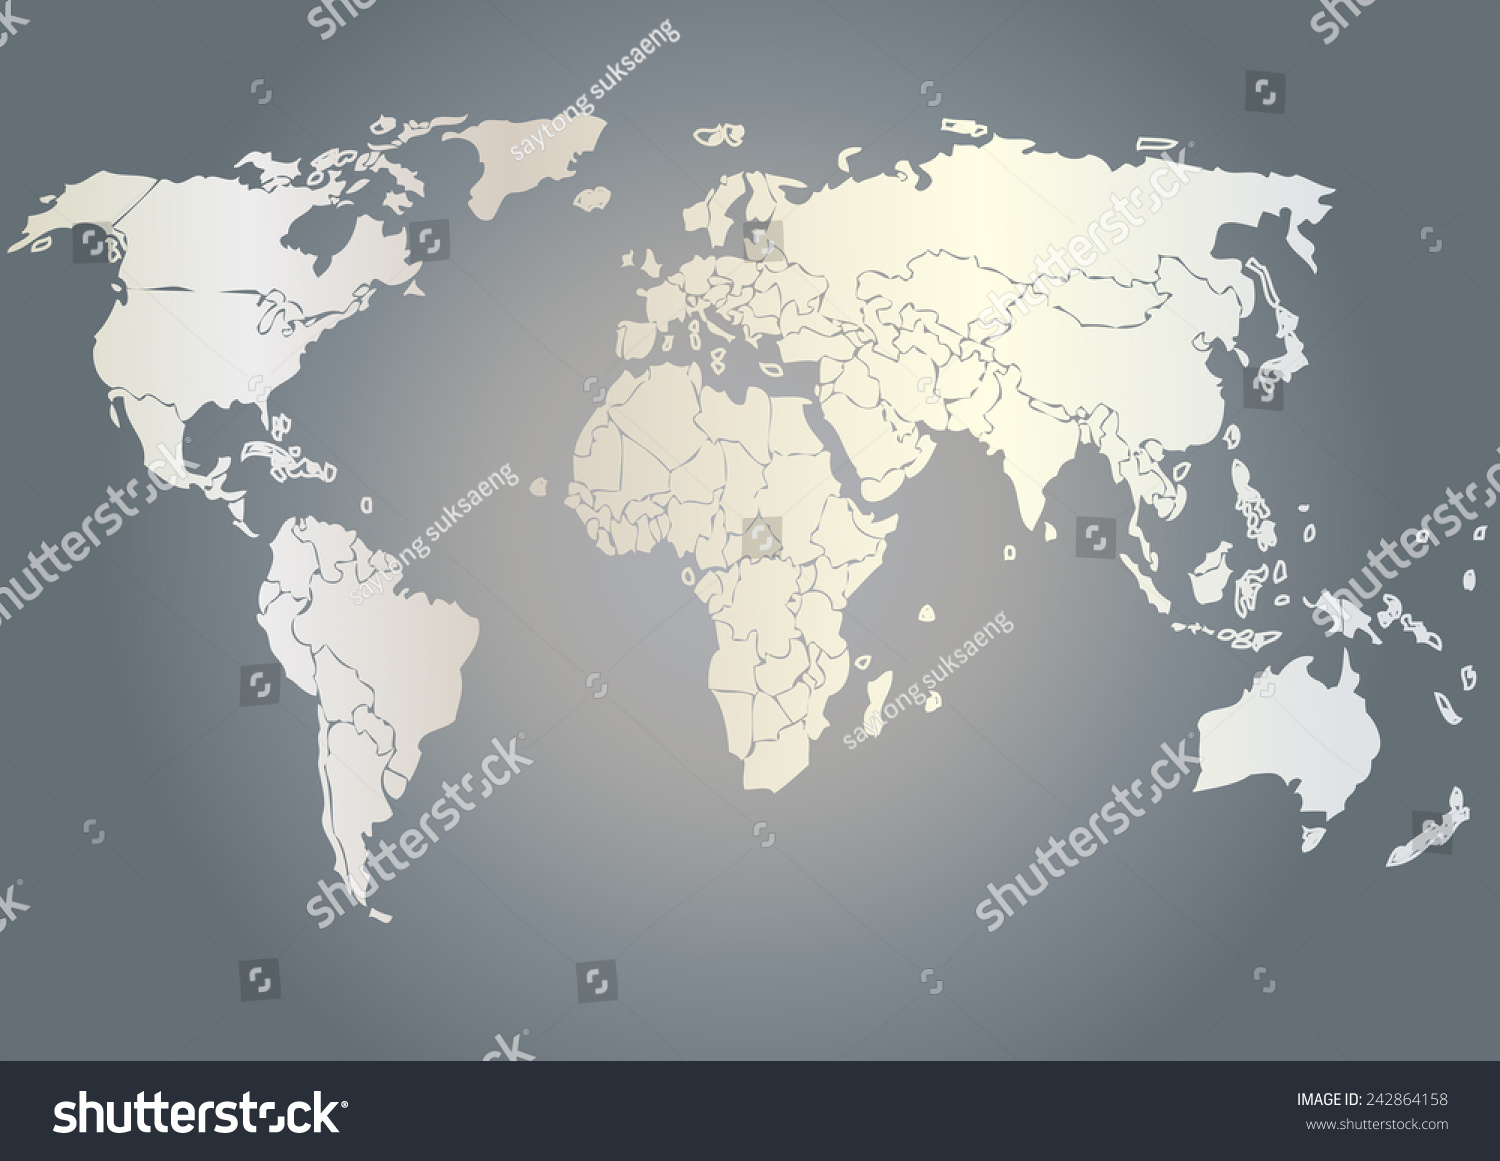 Vector drawing world map background textmonochrome stock vector vector drawing world map for background and textmonochrome worldmap vector template for website gumiabroncs Image collections